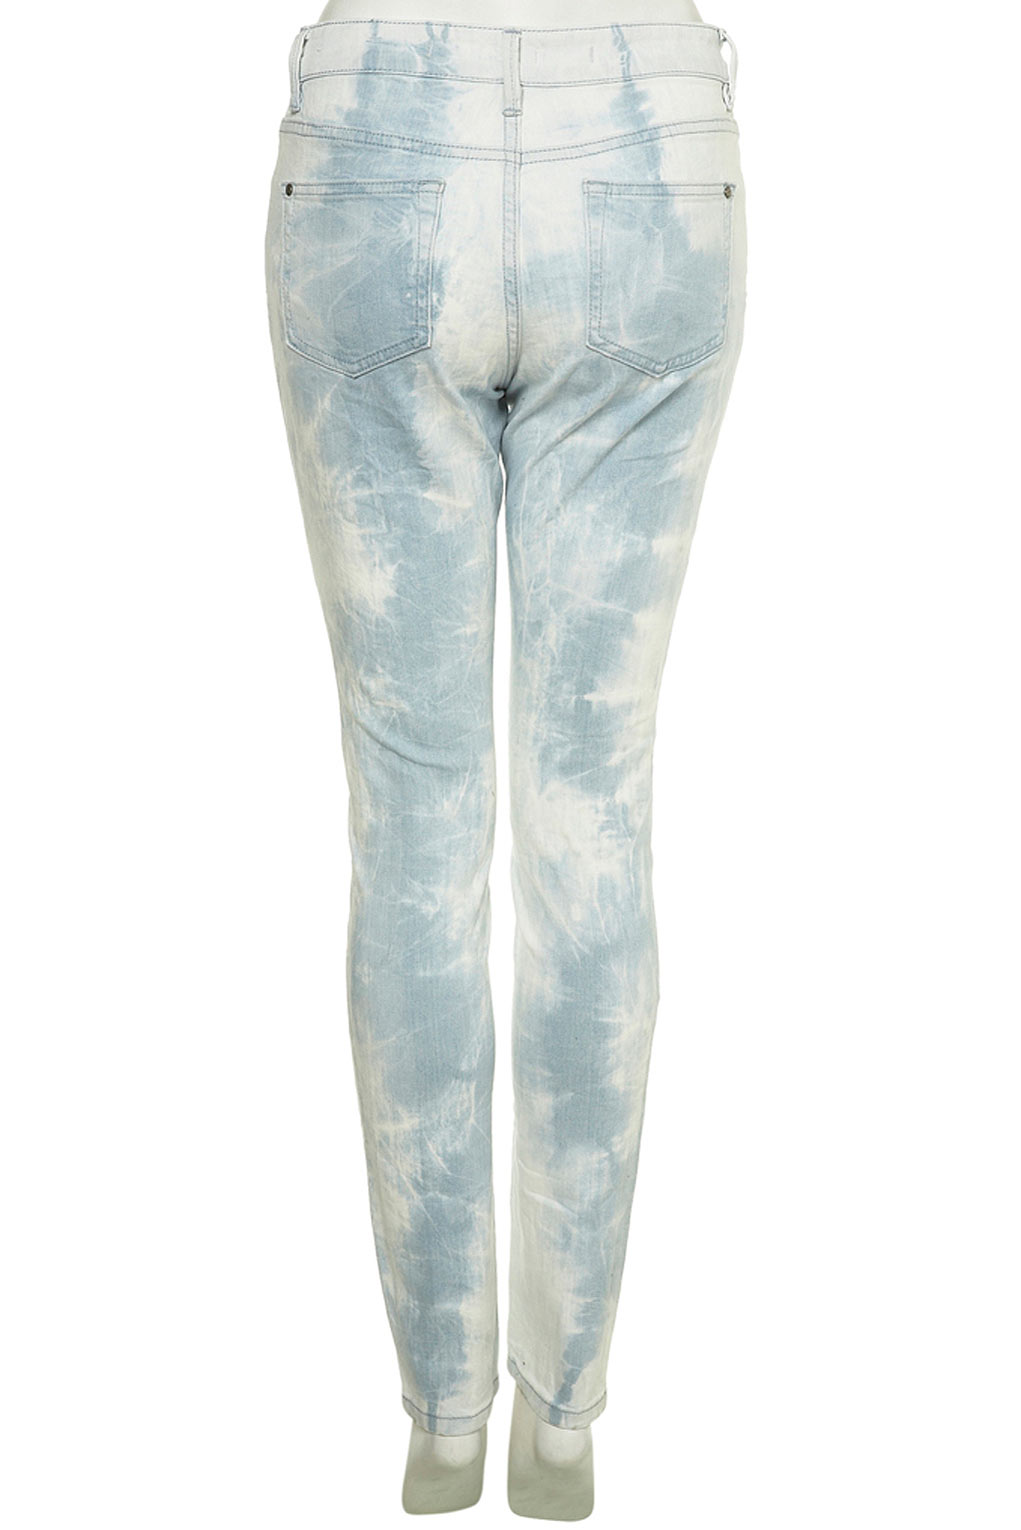 Topshop acid wash bleach ripped distressed skinny jeans ...